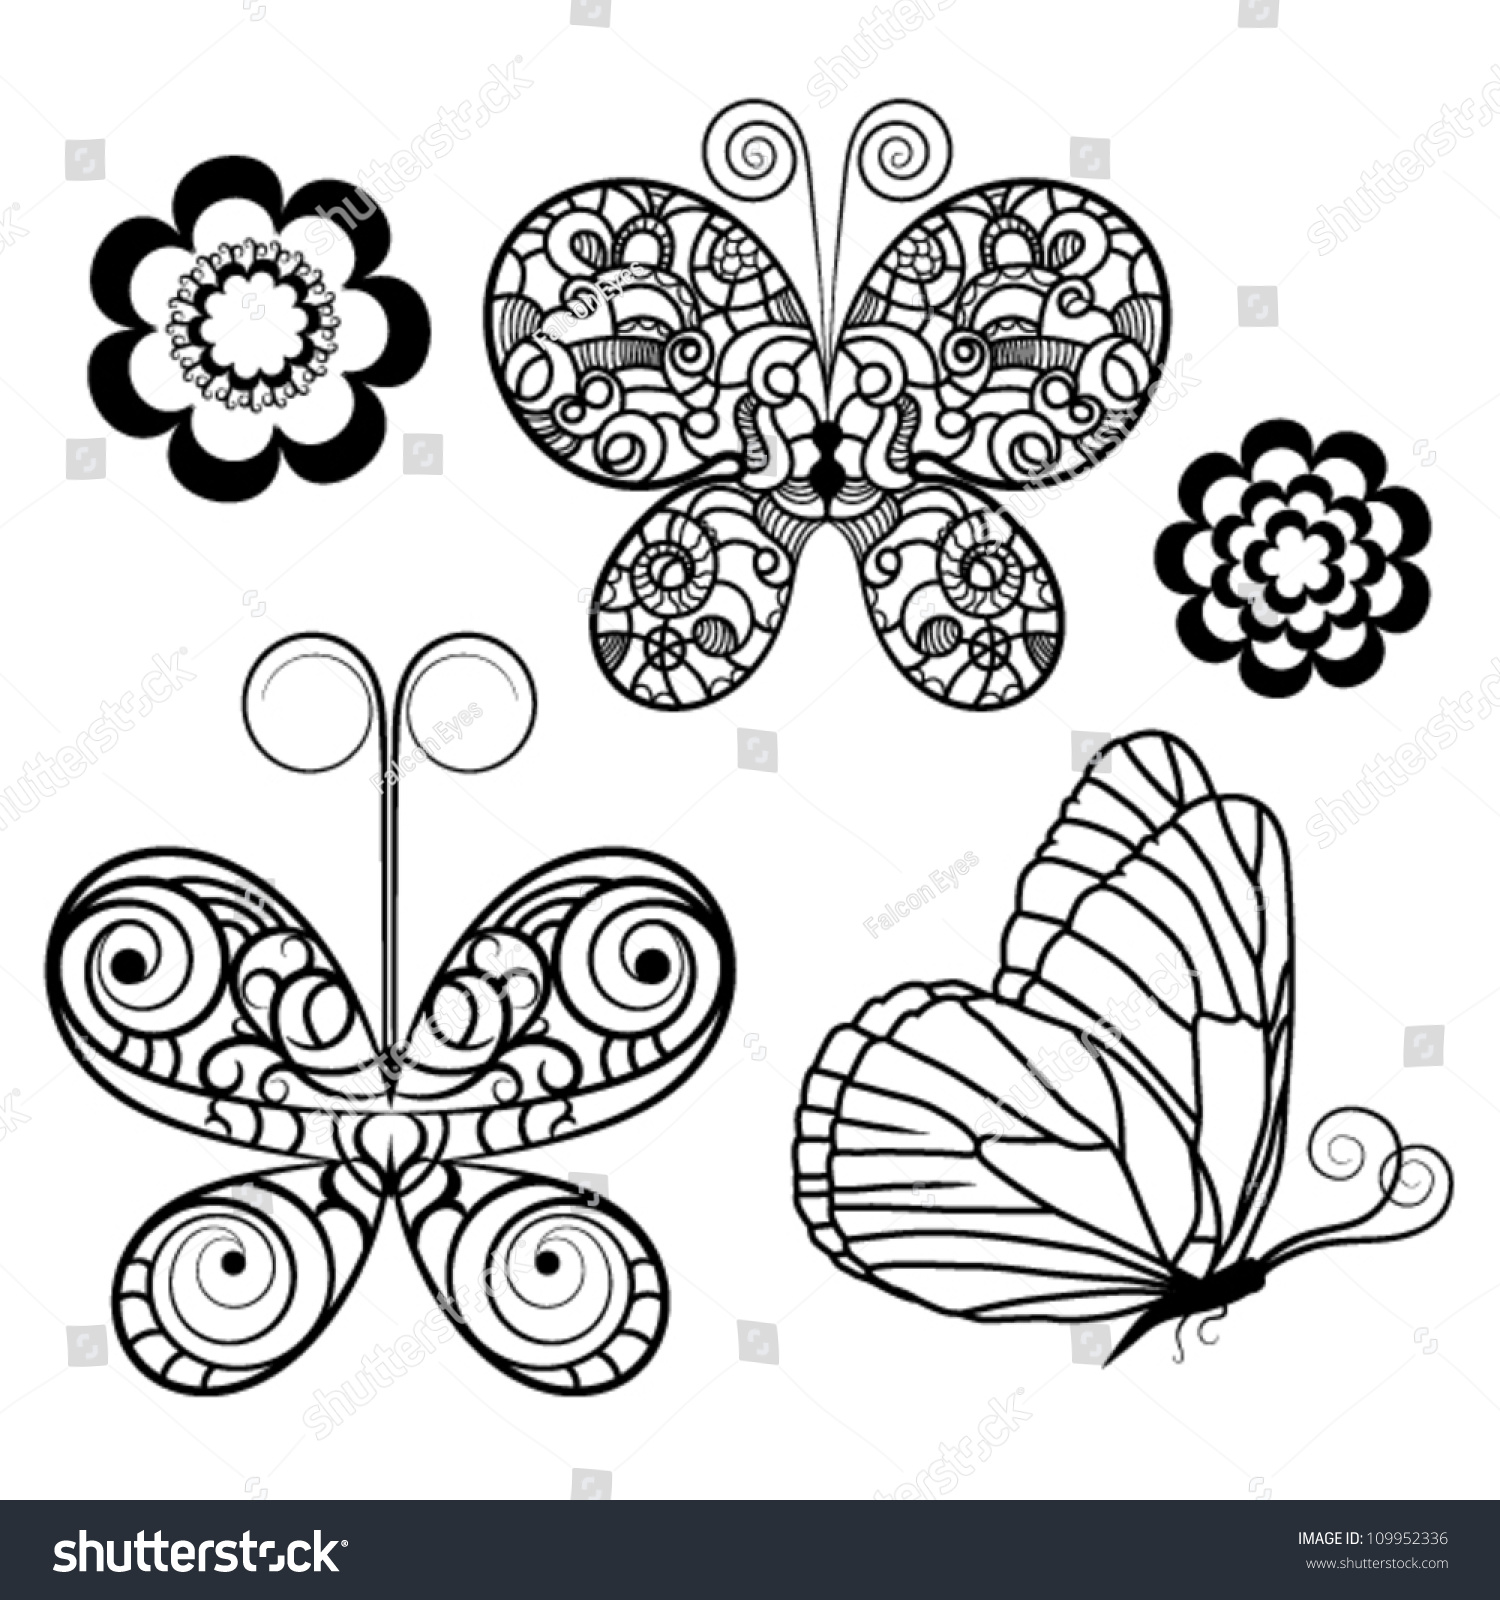 Contour Line Drawing Butterfly : Set butterflies flowers contour drawing stock vector